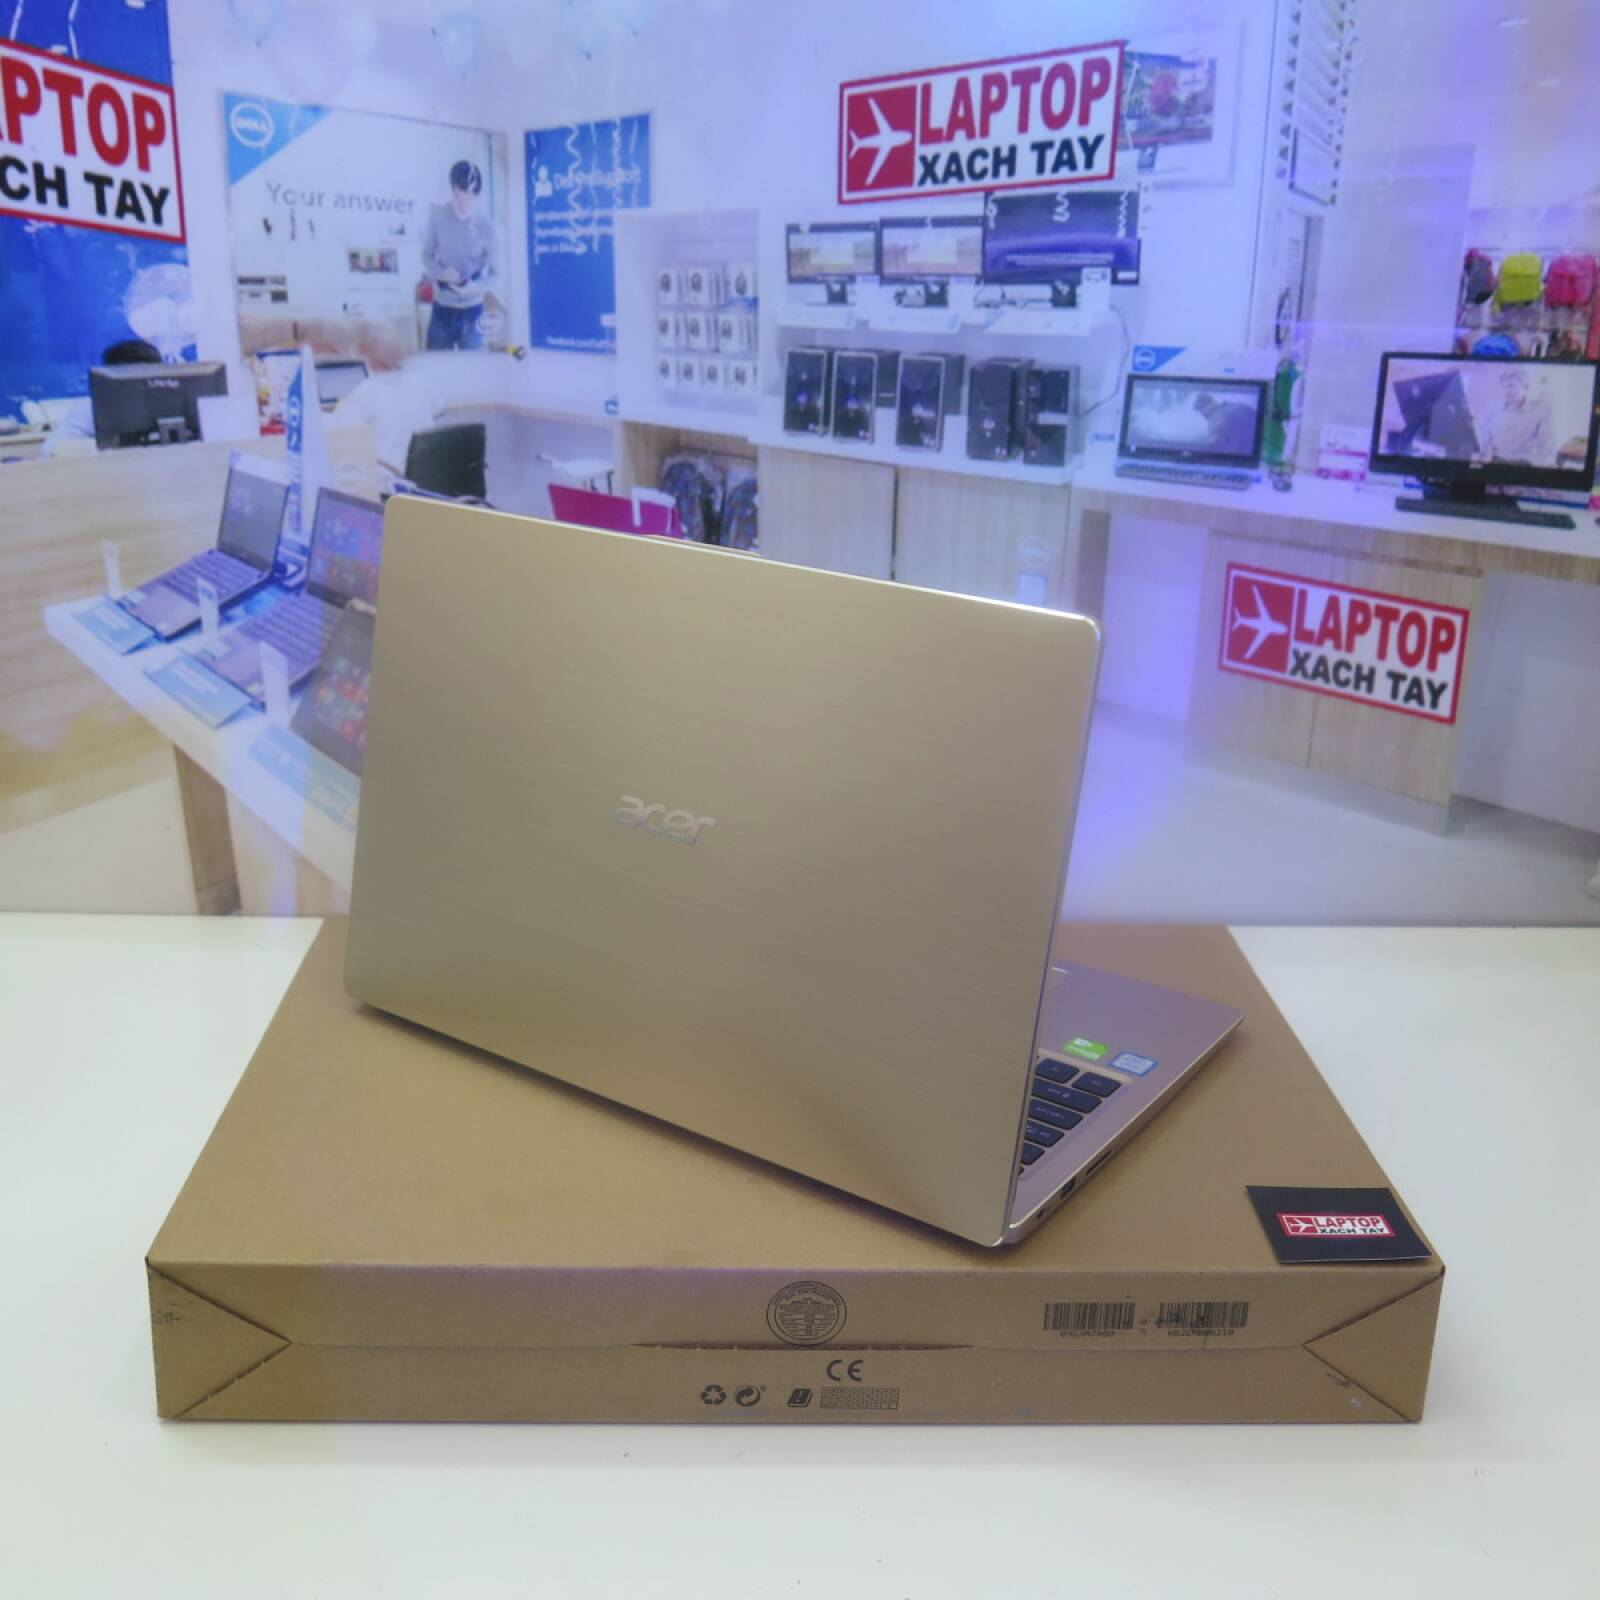 Acer Swift SF315 tại Laptopxachtayshop.com